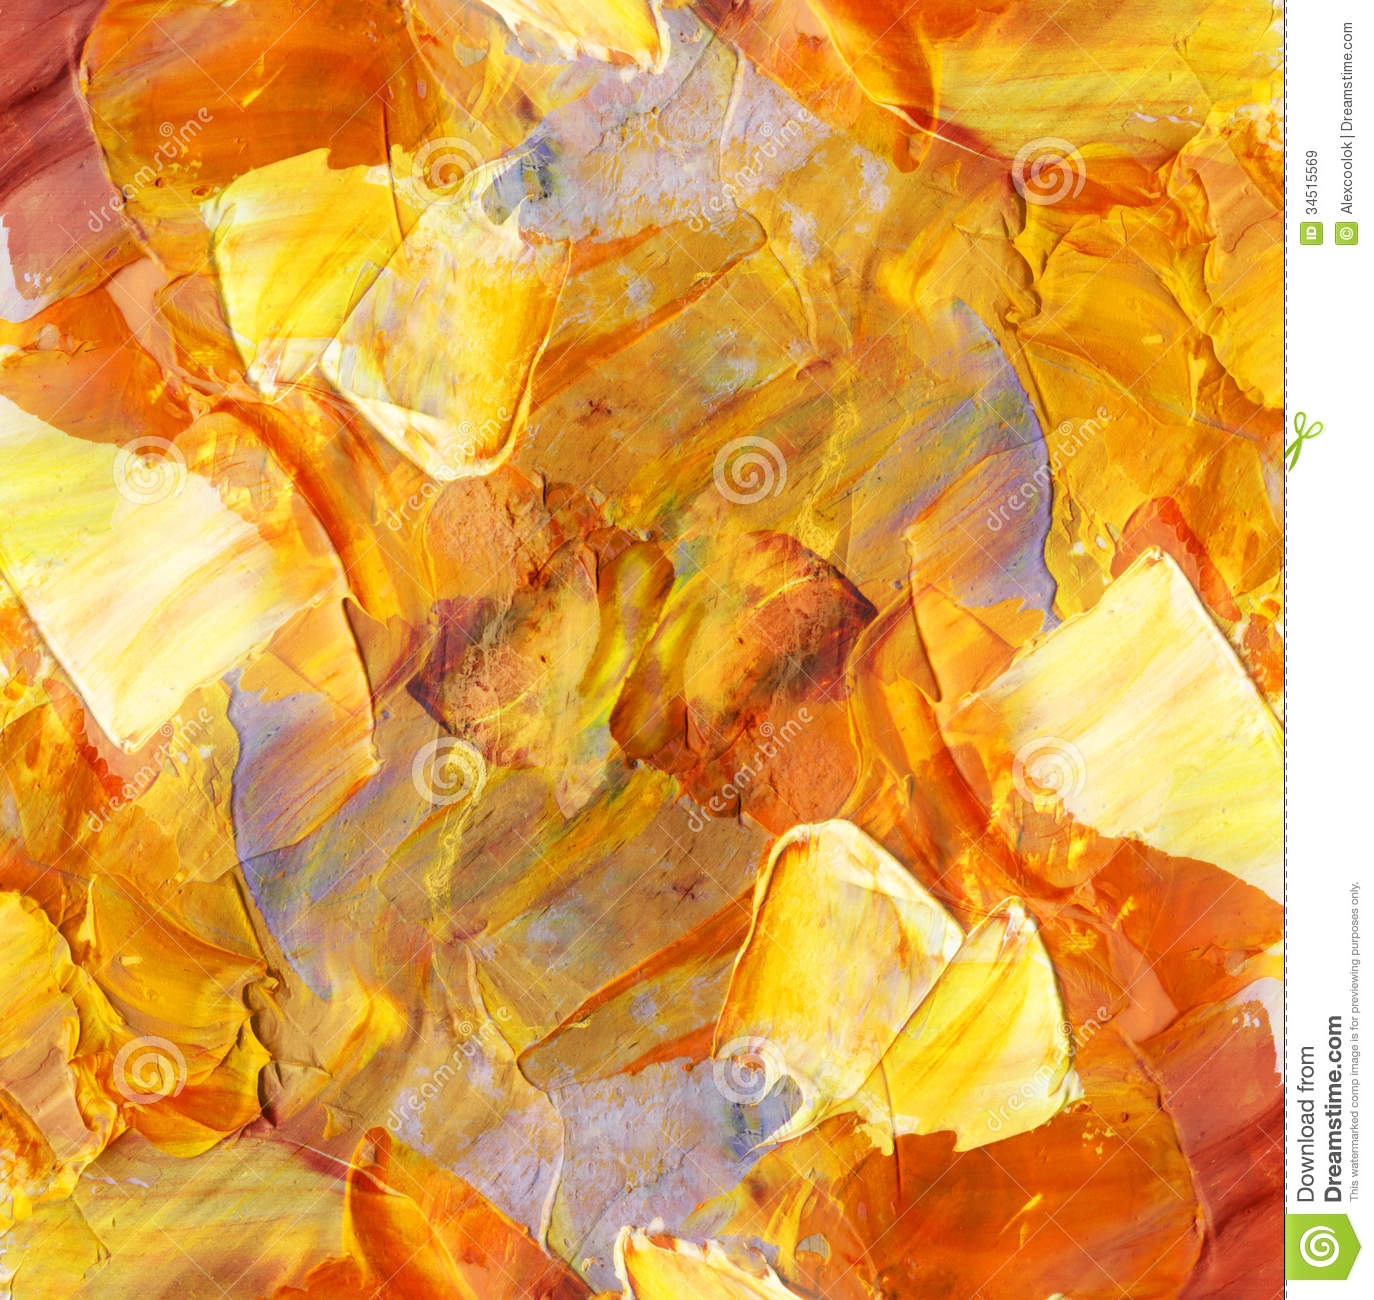 How To Paint Fire With Oil Paints